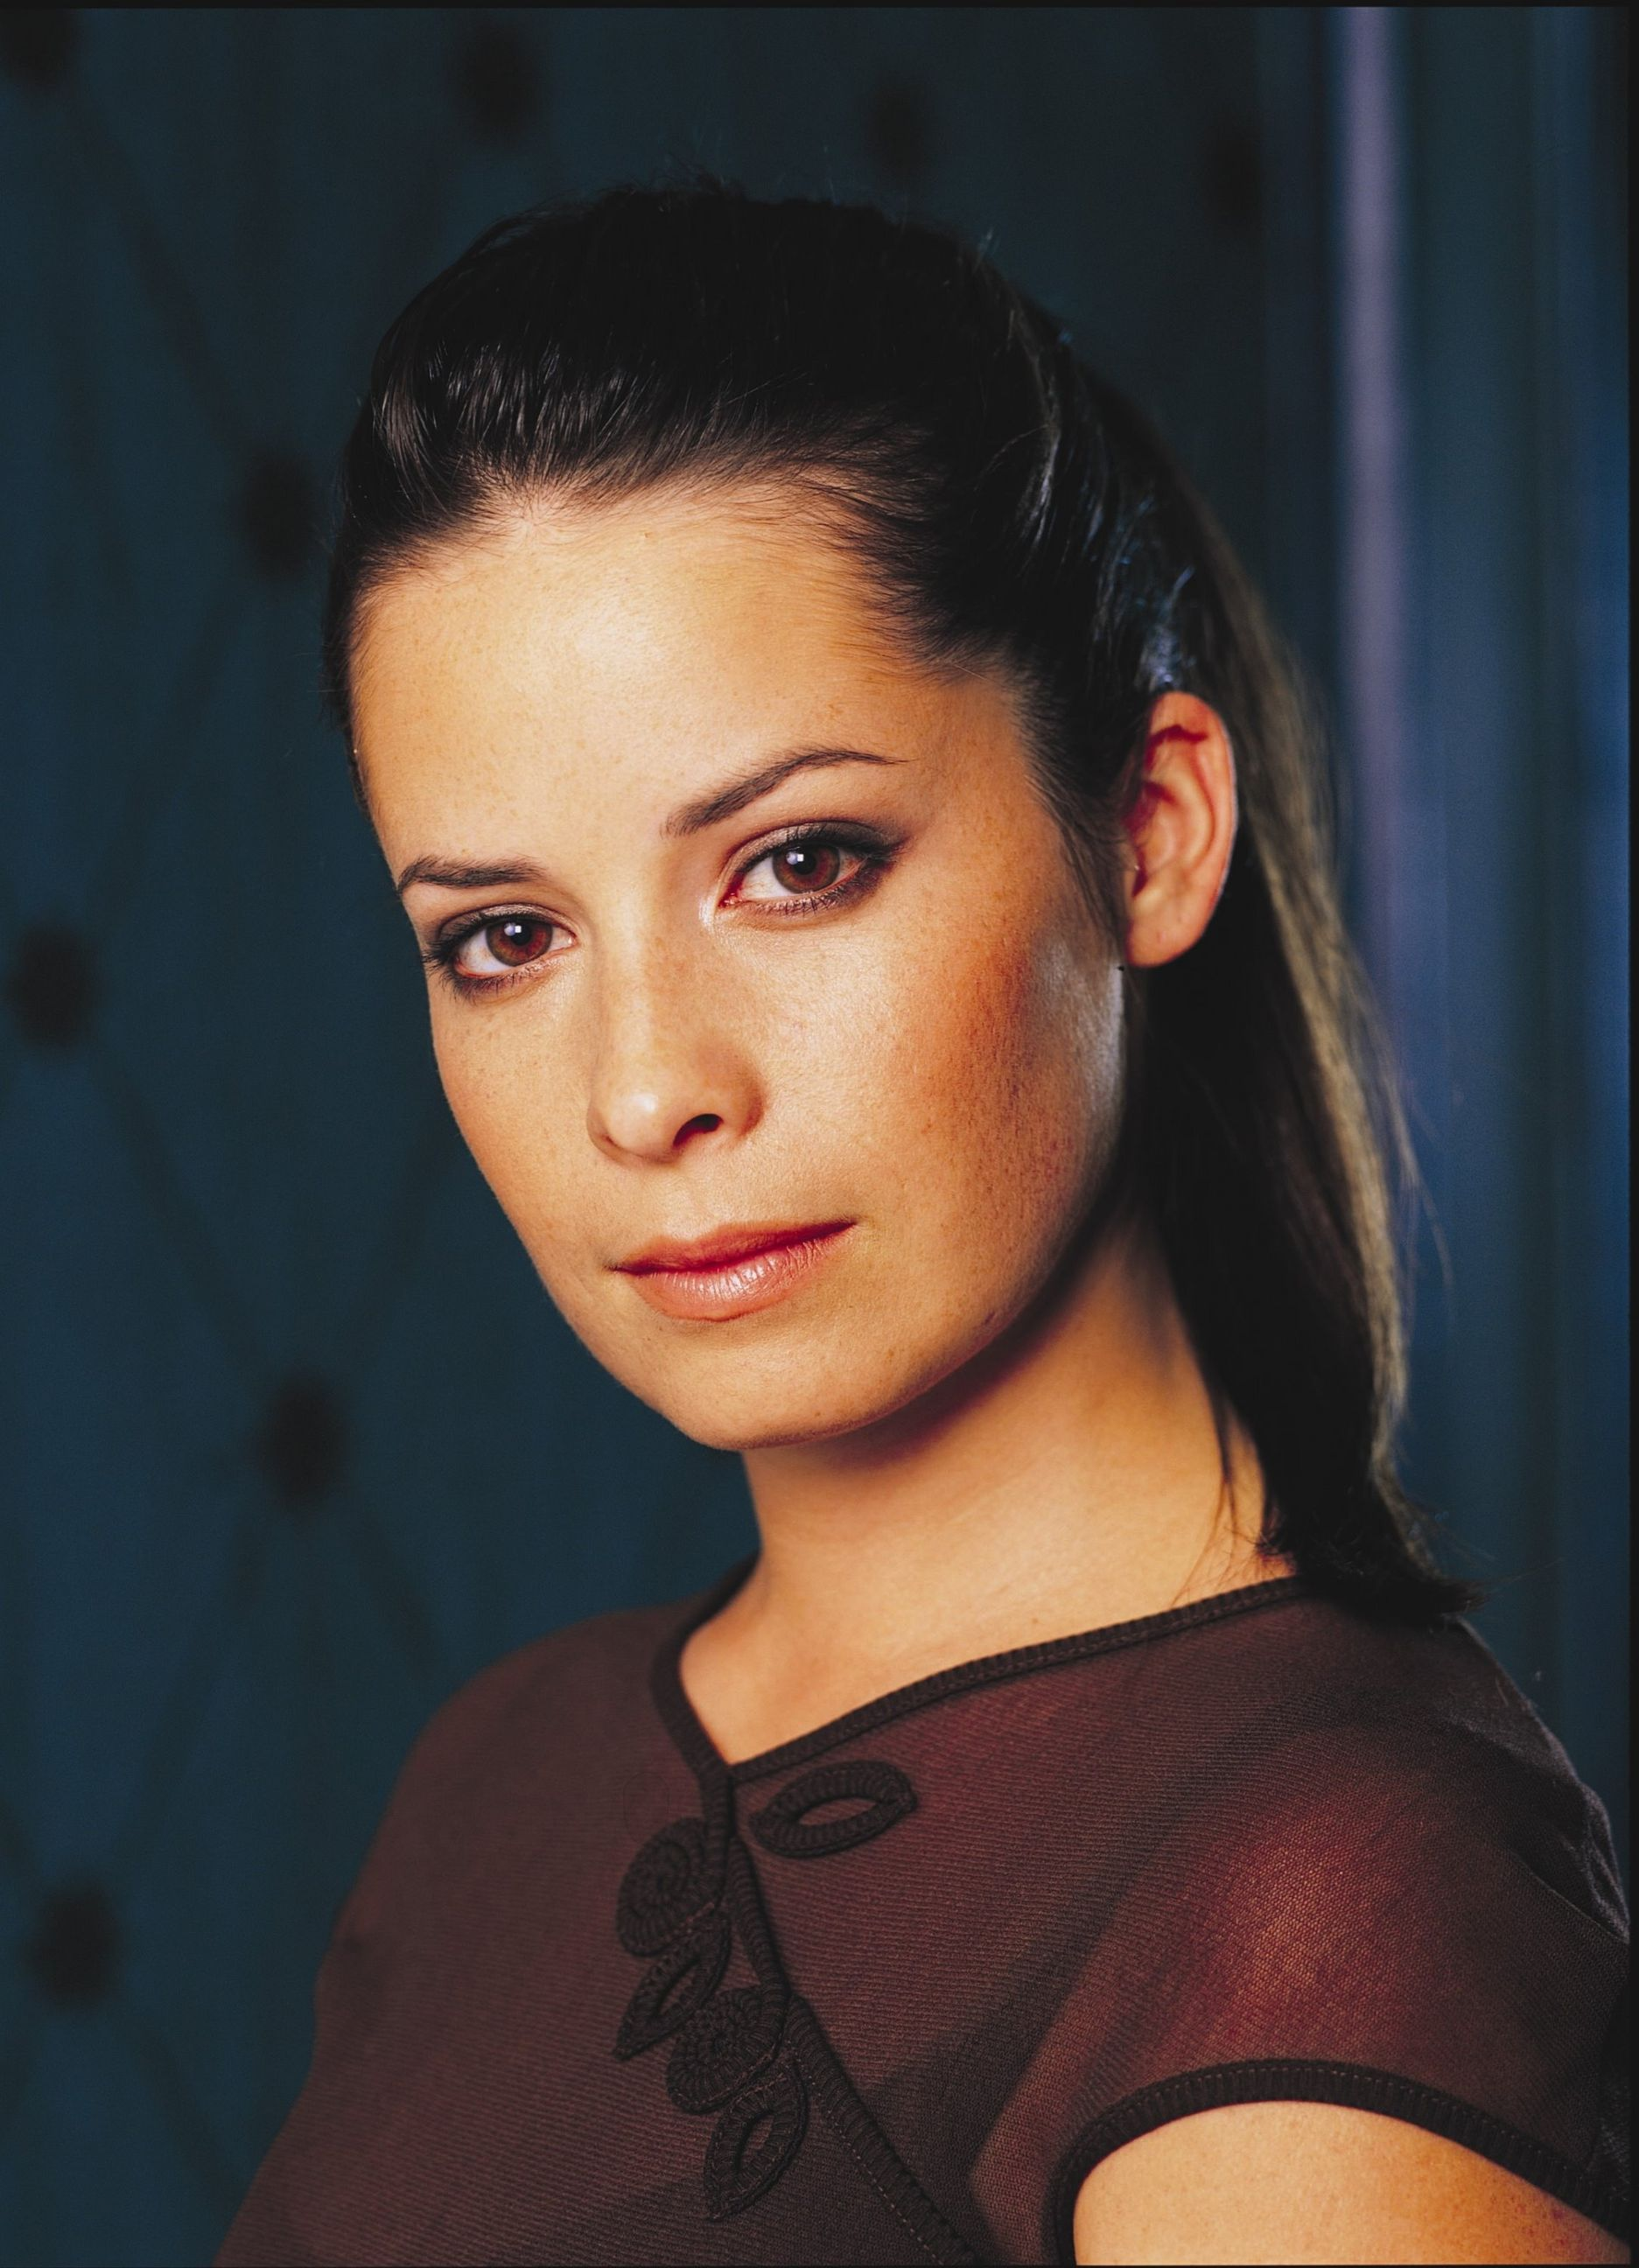 Charmed Holly Marie Combs Piper S2 15 Dvdbash Dvdbash